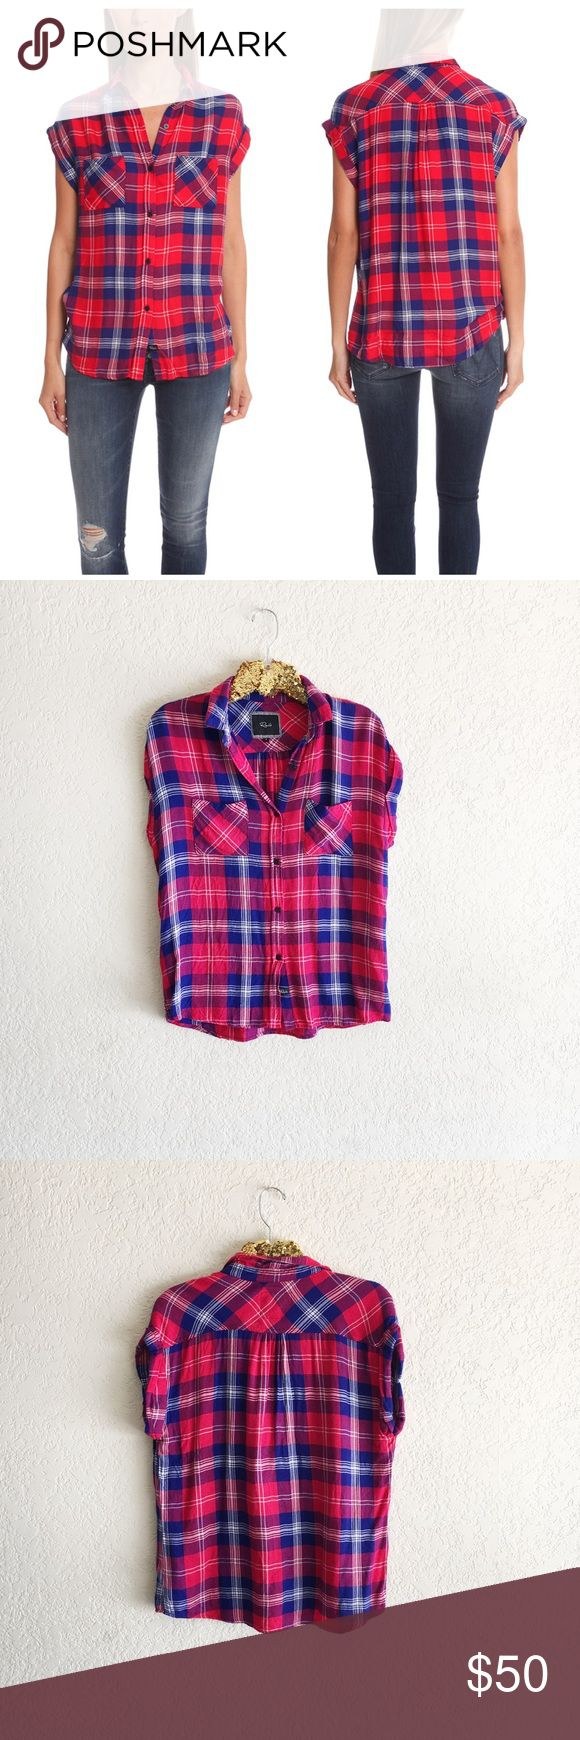 "Rails Britt Rolled Short Sleeve Shirt This super soft and luxe Rails blouse comes in a classic cut making it your must have denim companion.   - Color: Cobalt/Cherry  - 100% Rayon  - Hand Wash/Hang Dry   * Model is 5'9"" wearing size S Rails Tops Button Down Shirts"